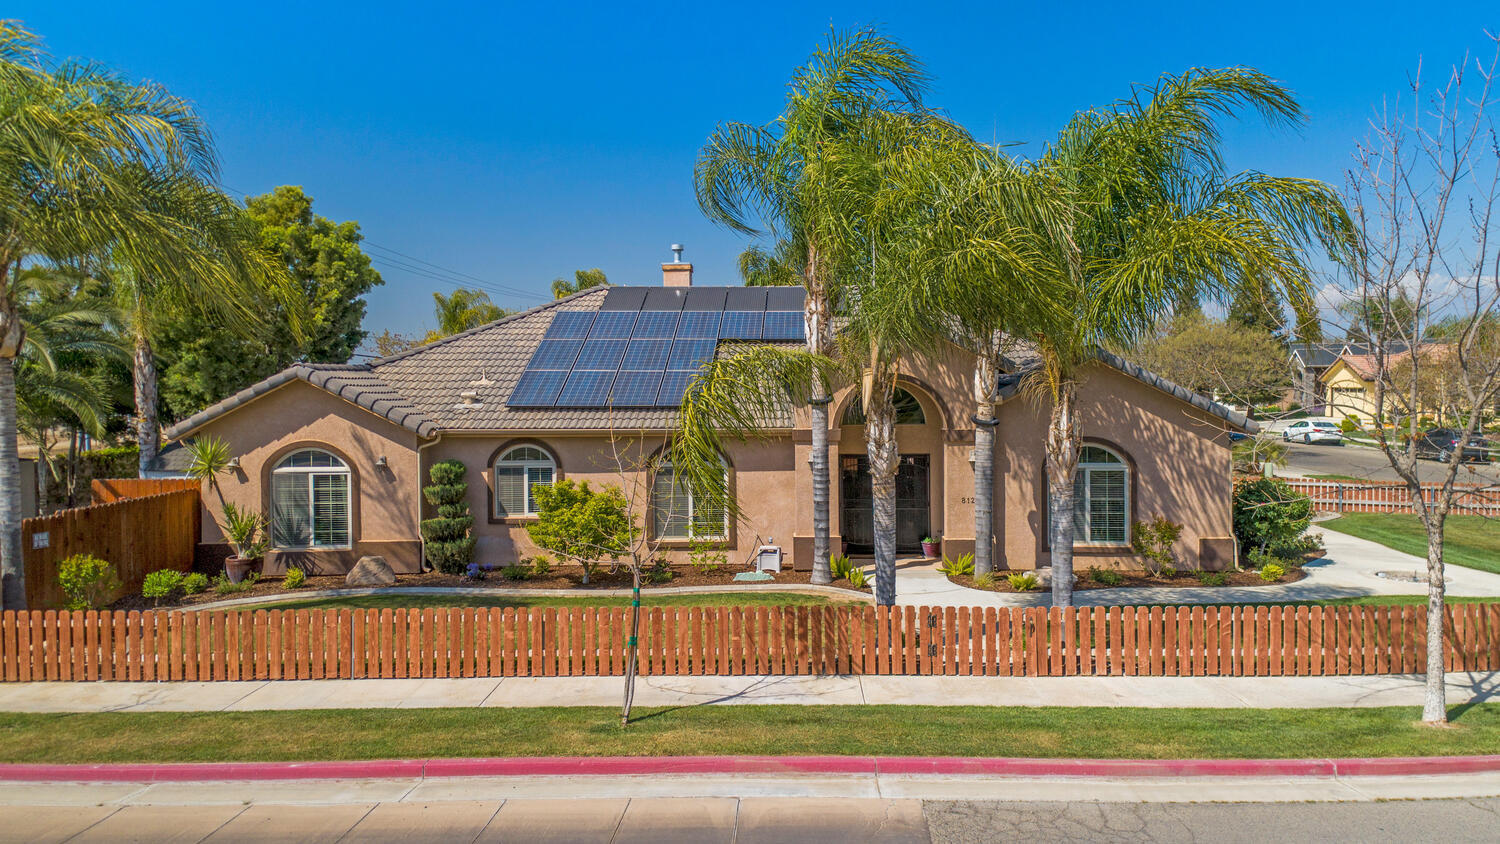 812 Park Place Drive, Exeter, California 93221, 4 Bedrooms Bedrooms, ,2 BathroomsBathrooms,Single Family,For Sale,812 Park Place Drive,1,210236